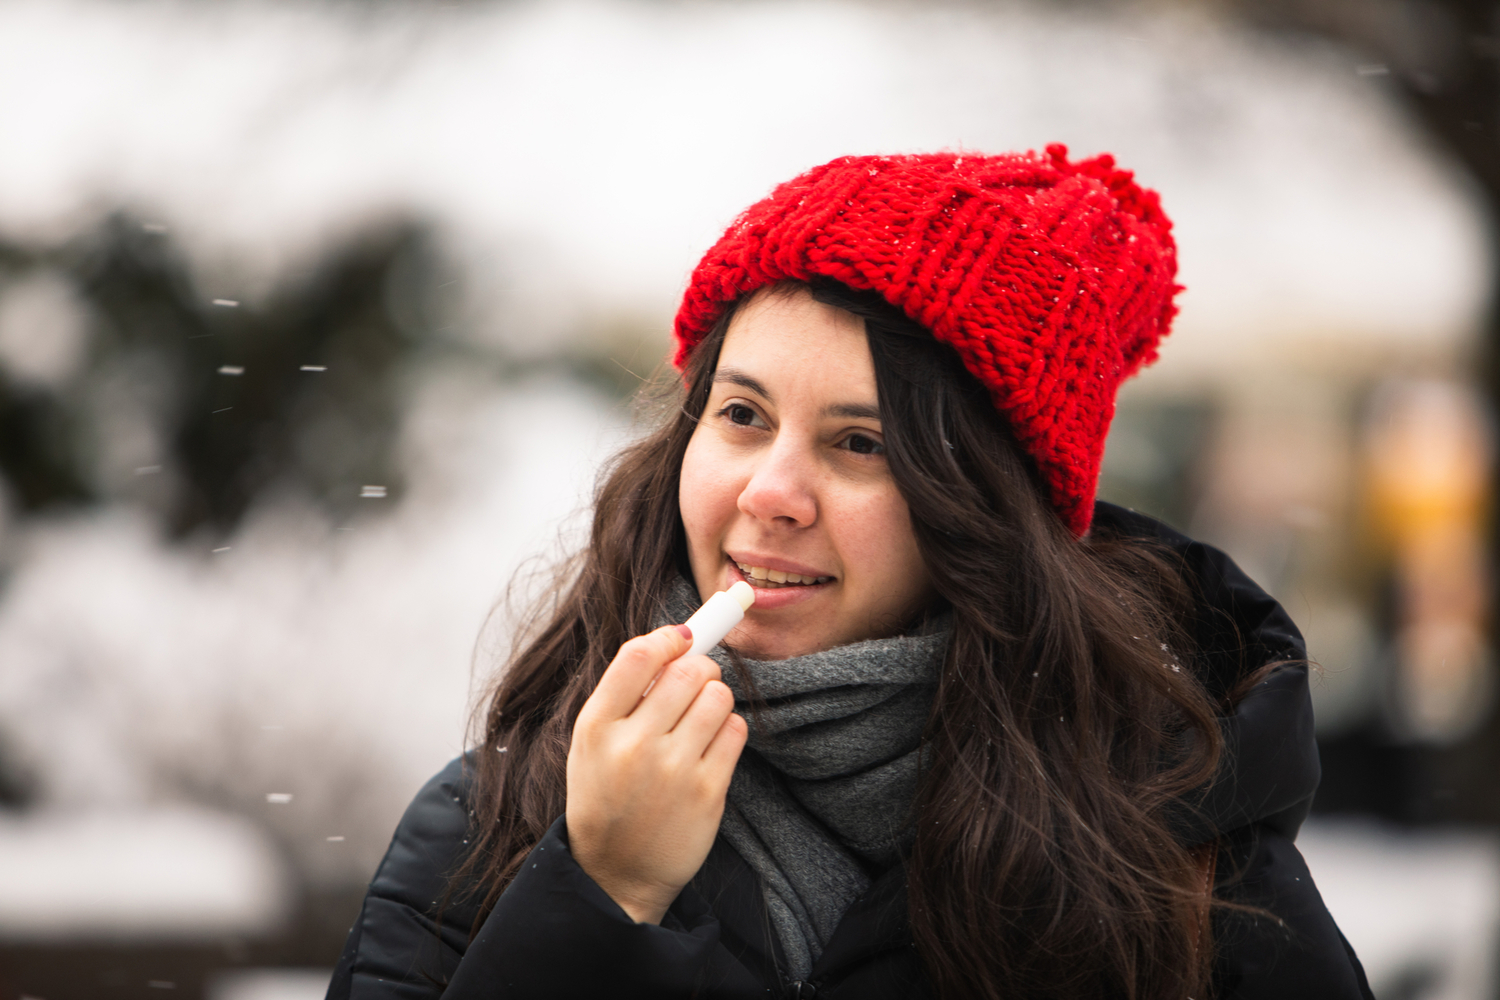 Winter-proof your lips with this DIY lip balm